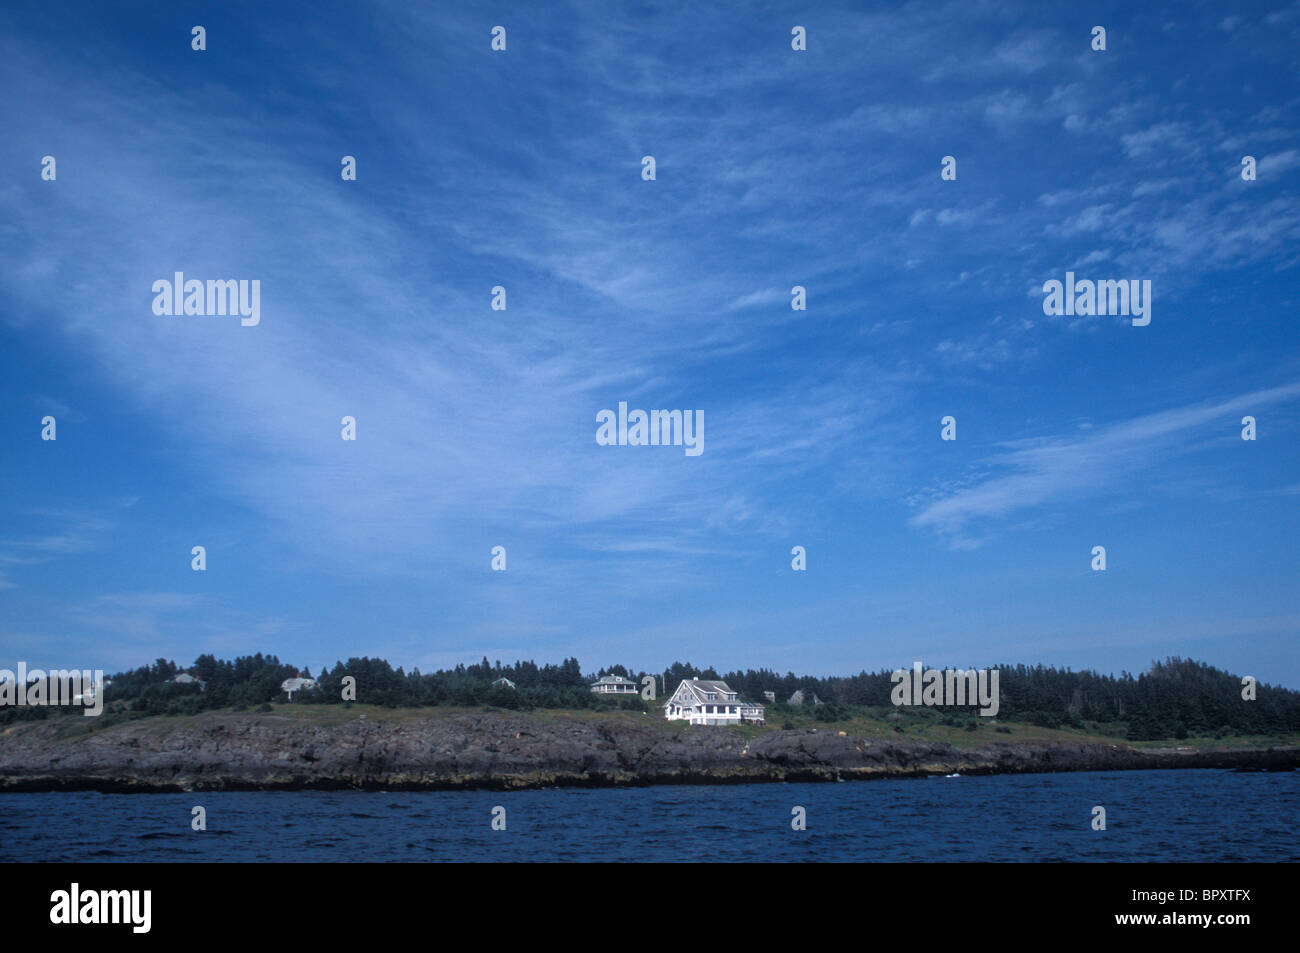 Venerable buildings on the picturesque island of Mohegan, Central Maine. - Stock Image